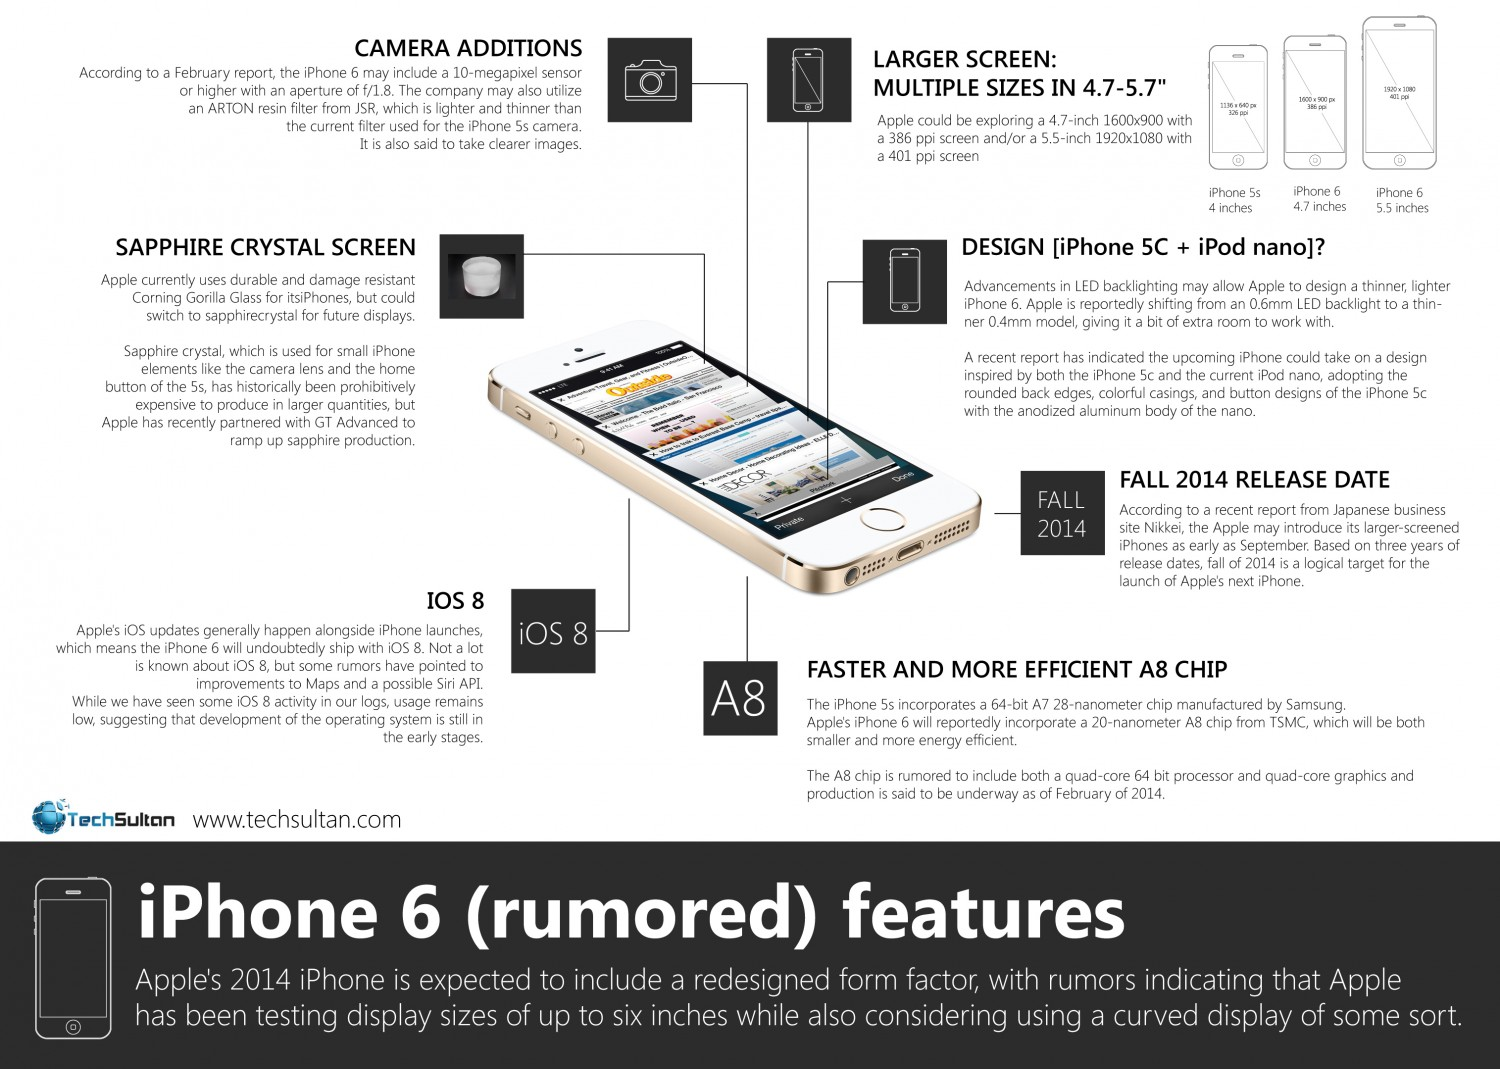 iPhone 6 (Rumored) Features